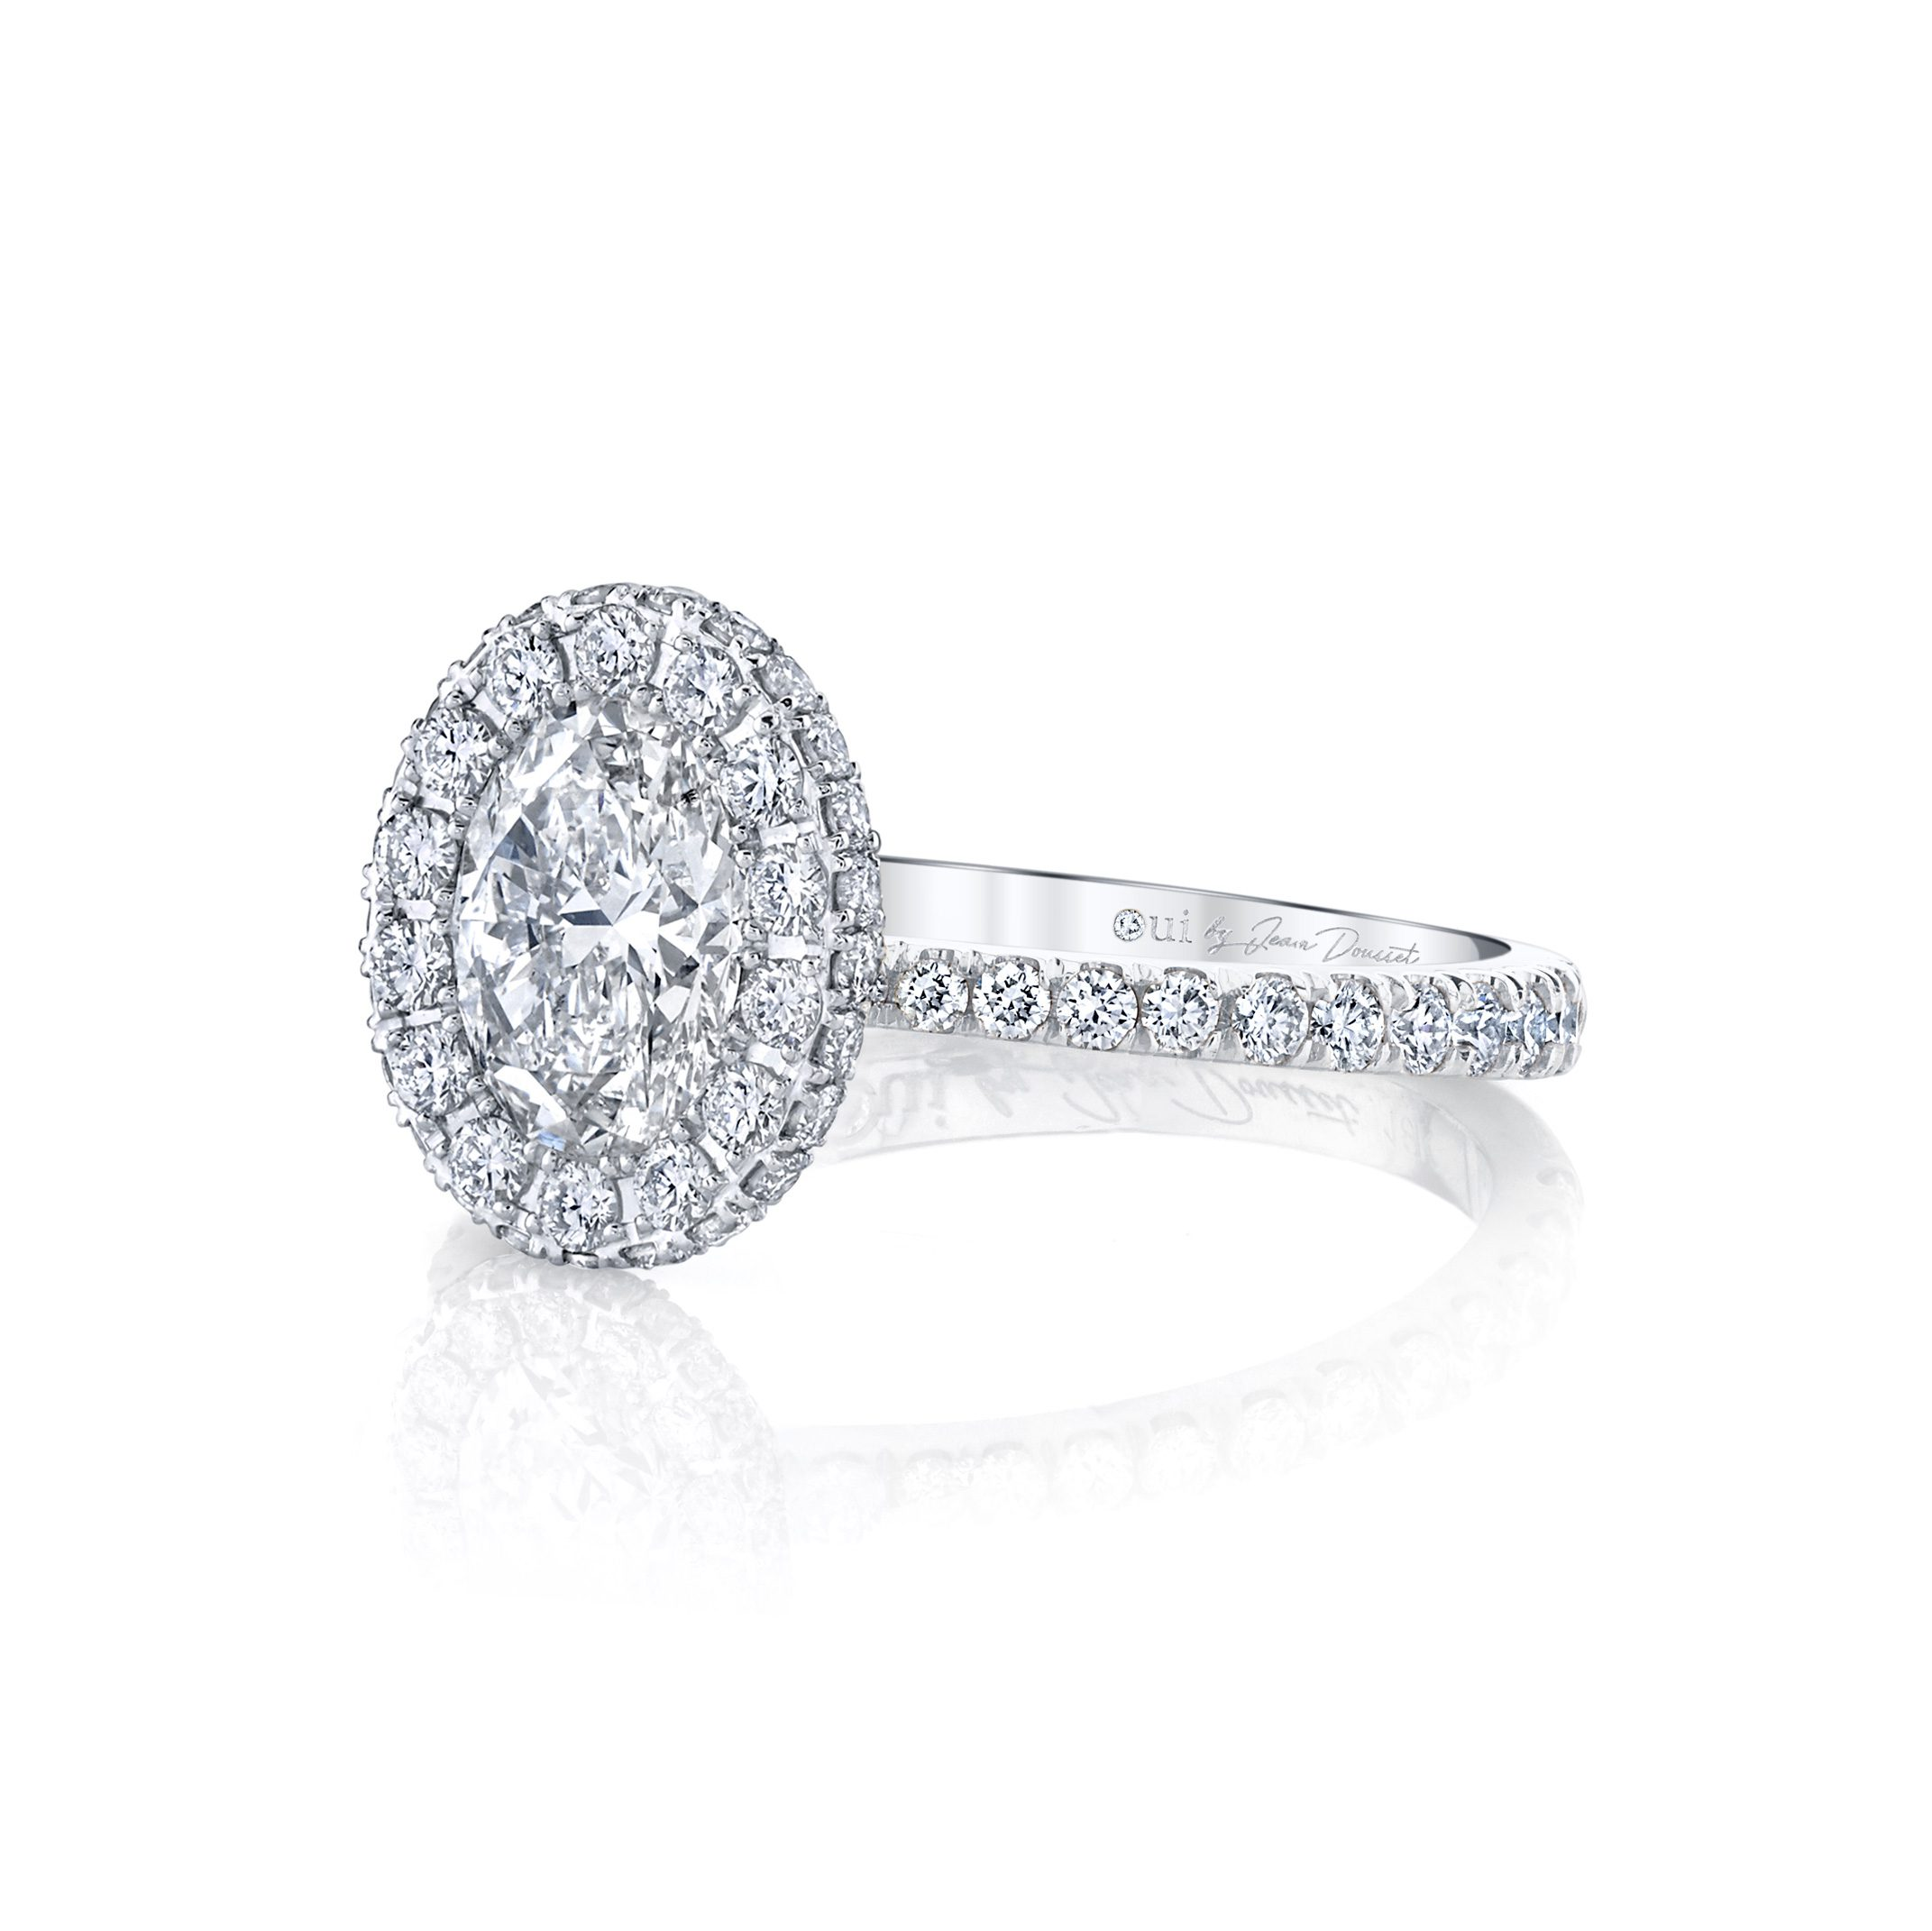 Eloise Oval Seamless Halo® Engagement Ring with diamond pavé in 18k White Gold Side View by Oui by Jean Dousset